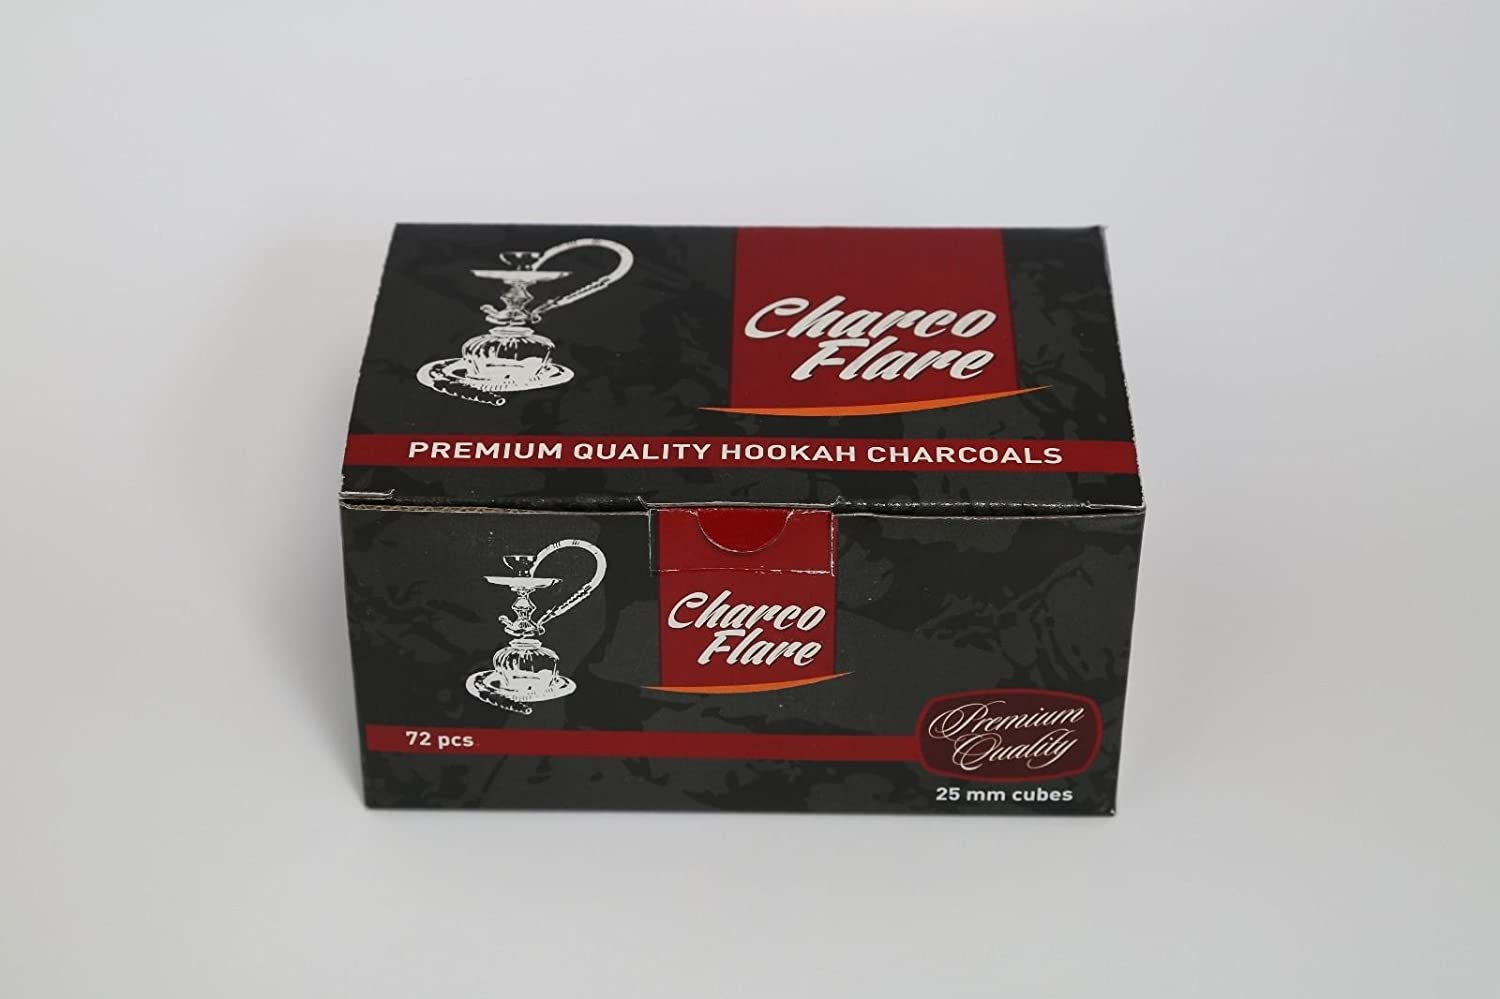 72 Pieces Charco Flare Hookah Natural Coals Hooka Shisha Coconut Charcoal 25mm